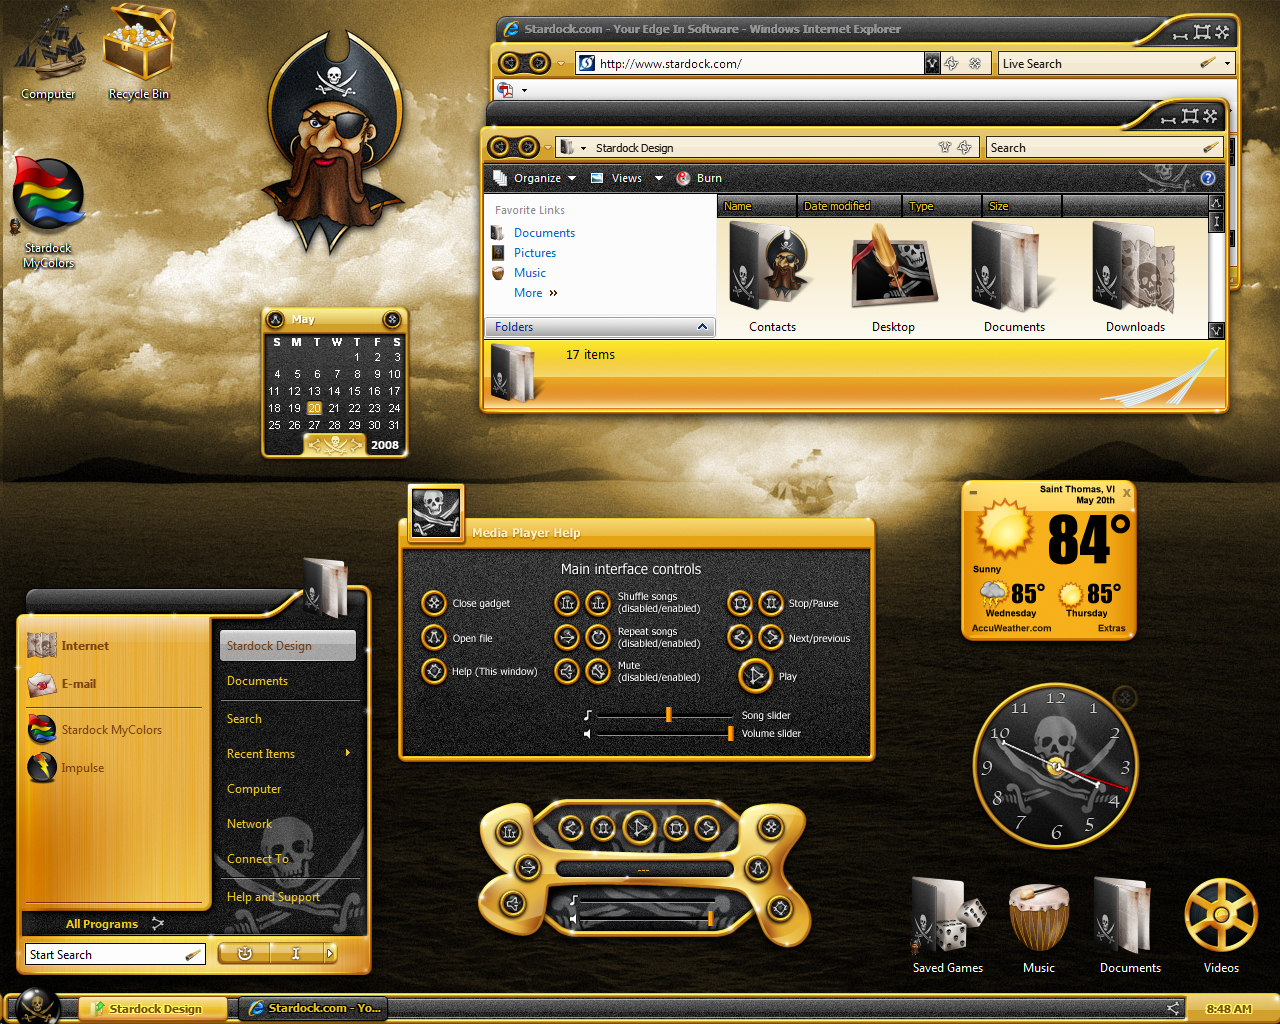 Stardock Wallpaper Premium Themes Software From Stardock Corporation